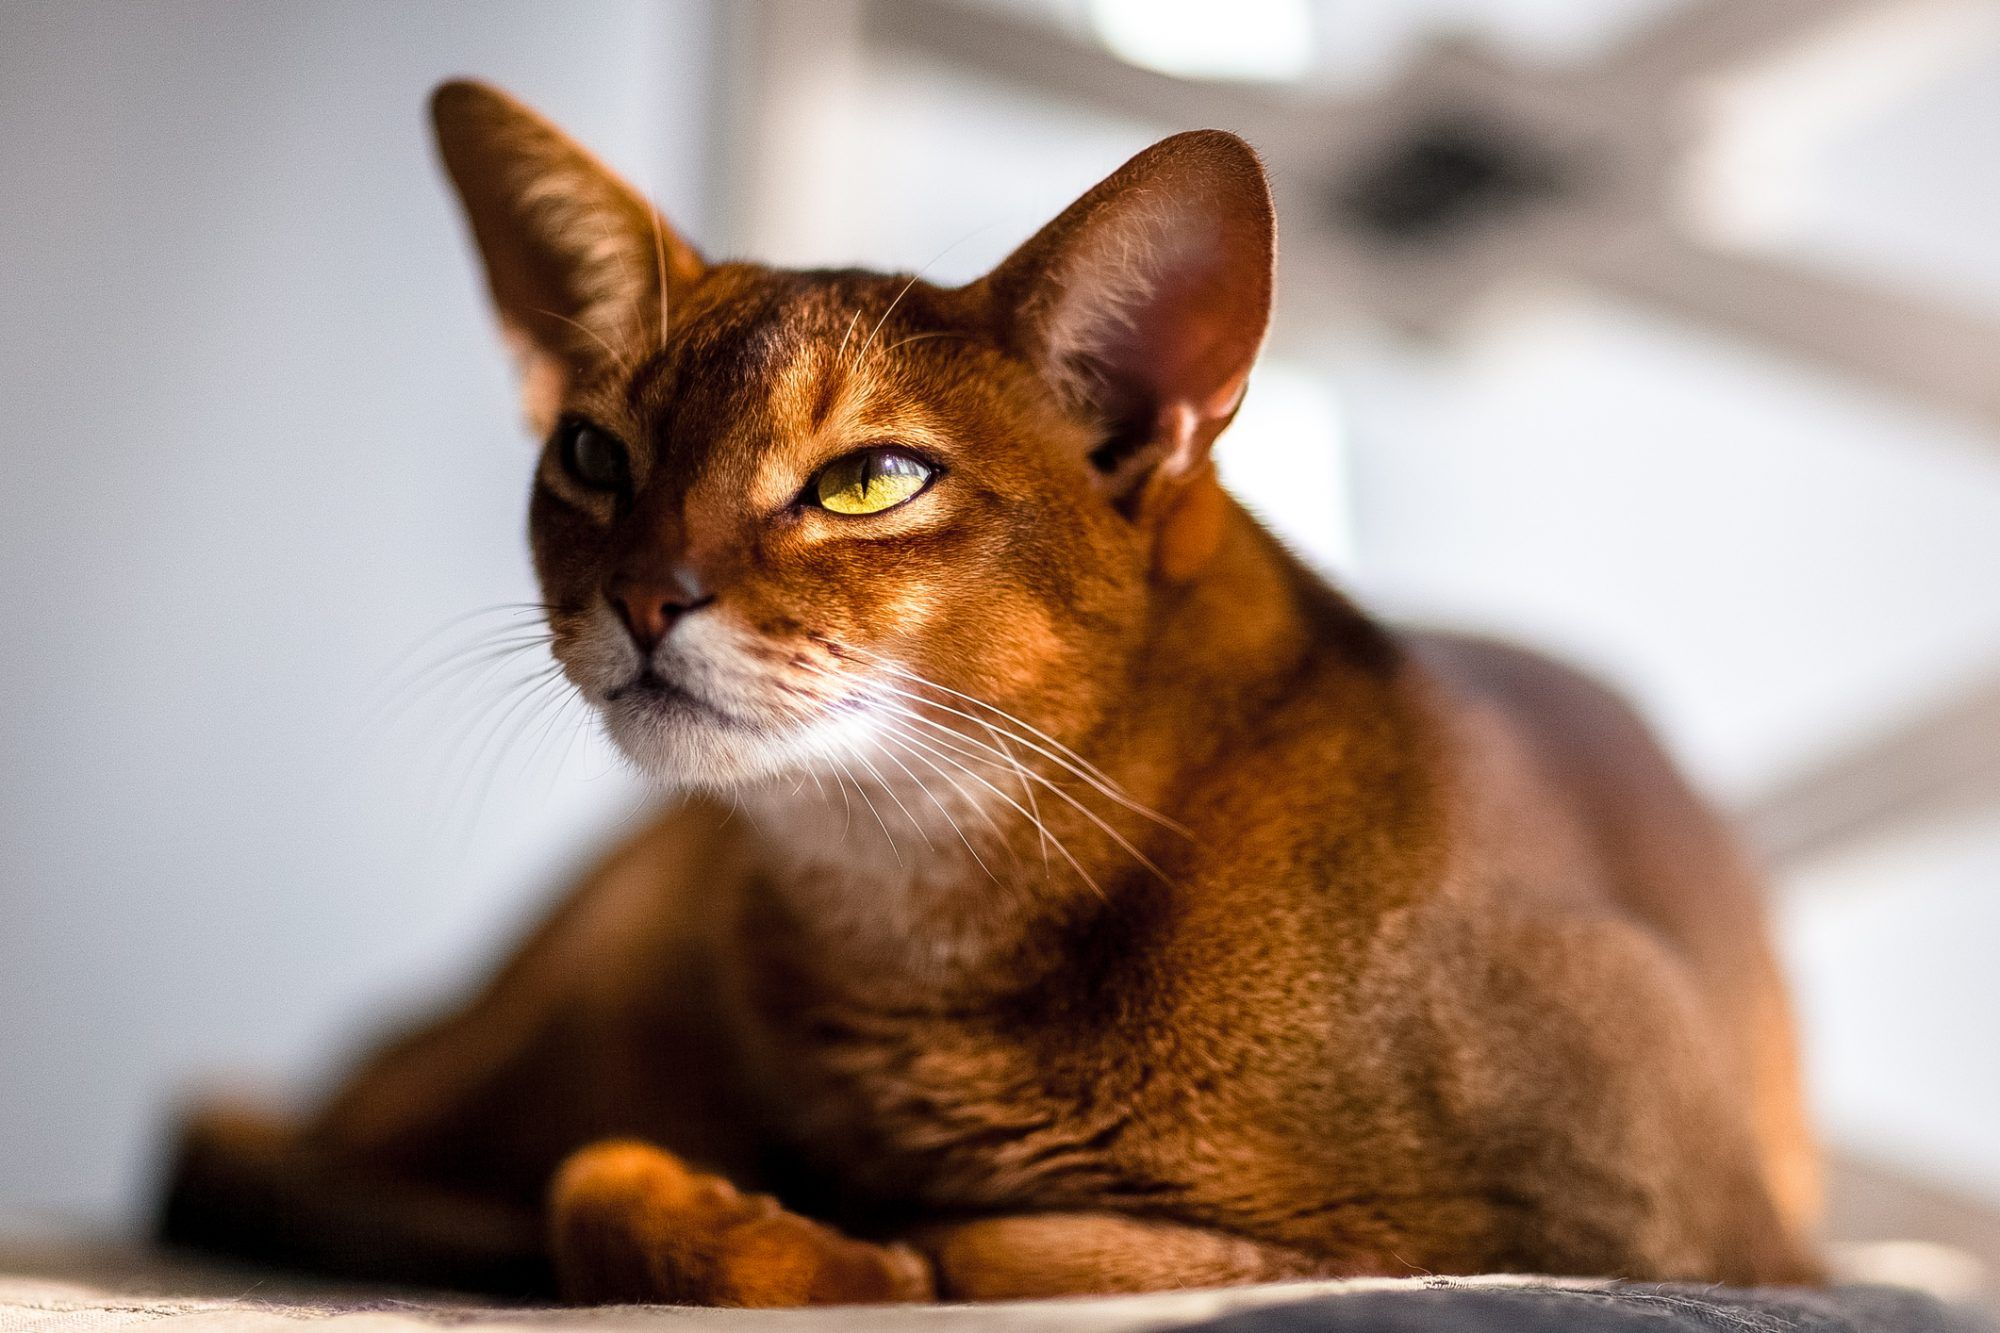 The 10 Most Affectionate Cat Breeds in 2020 Cat breeds